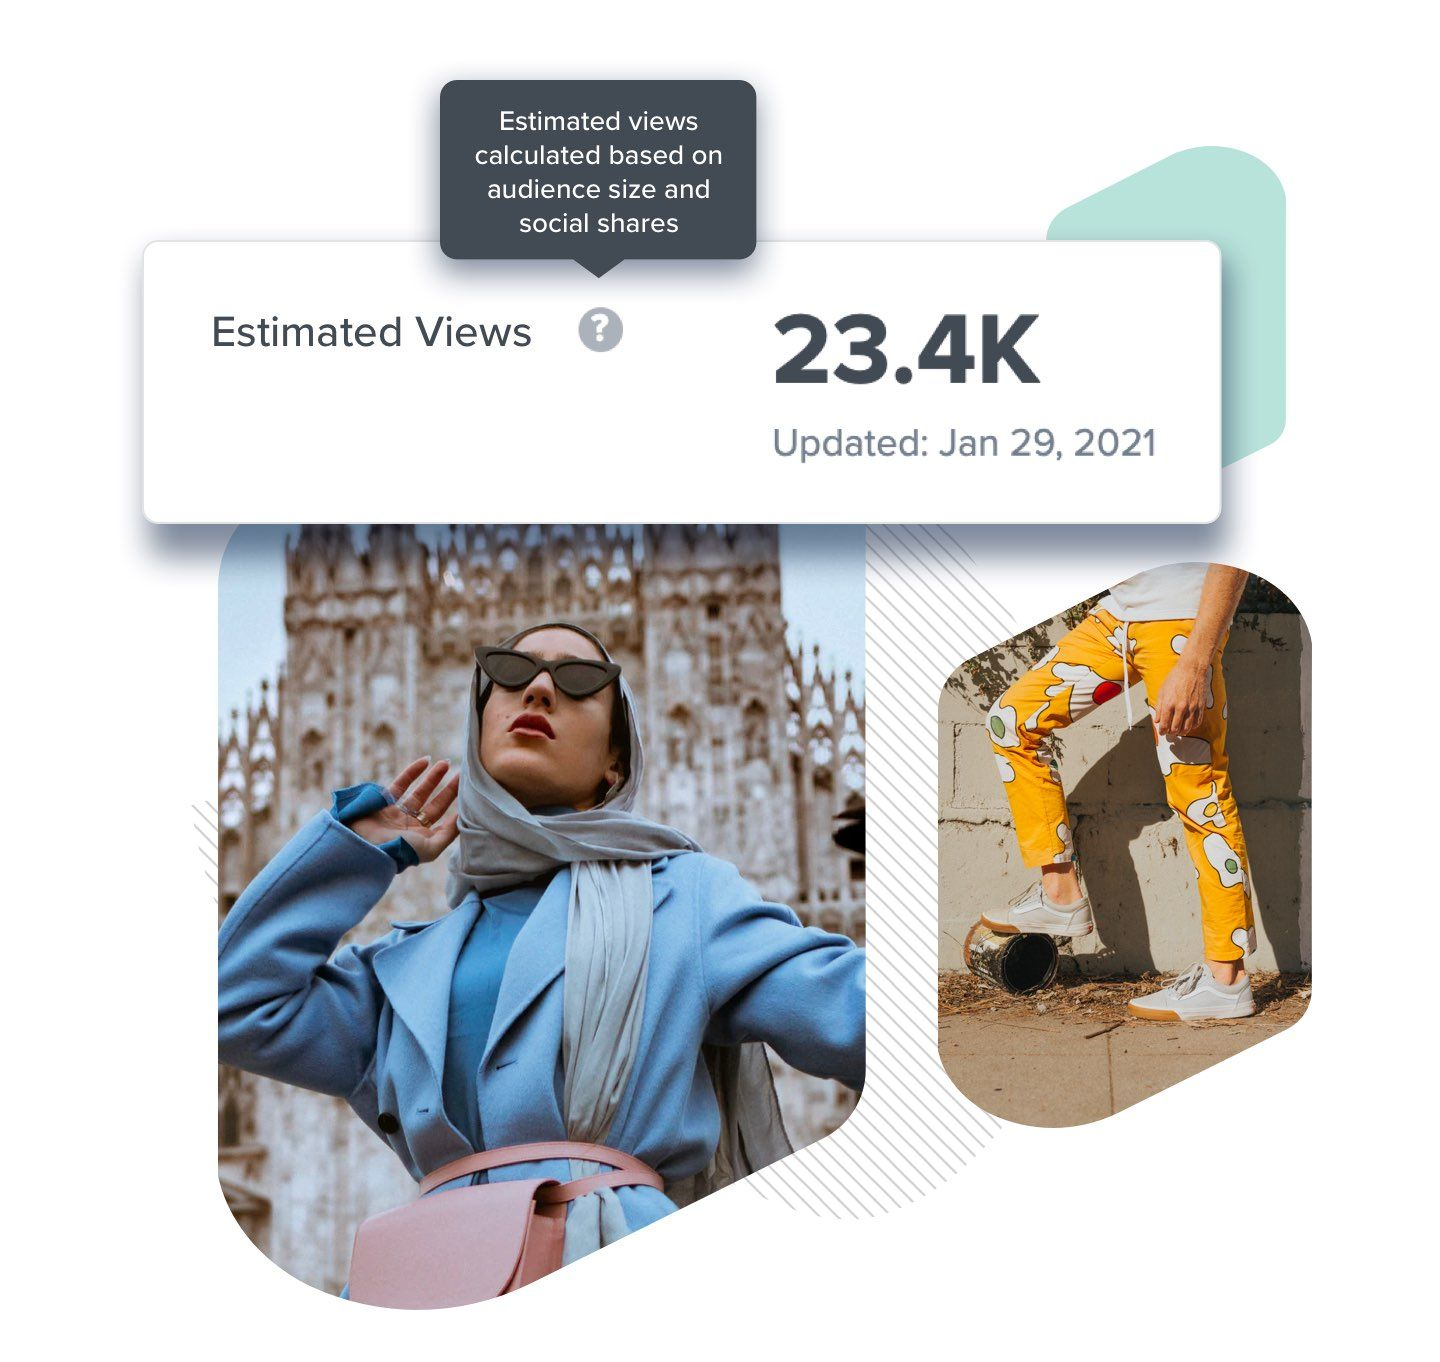 social post images and estimated view metric of 23.4K